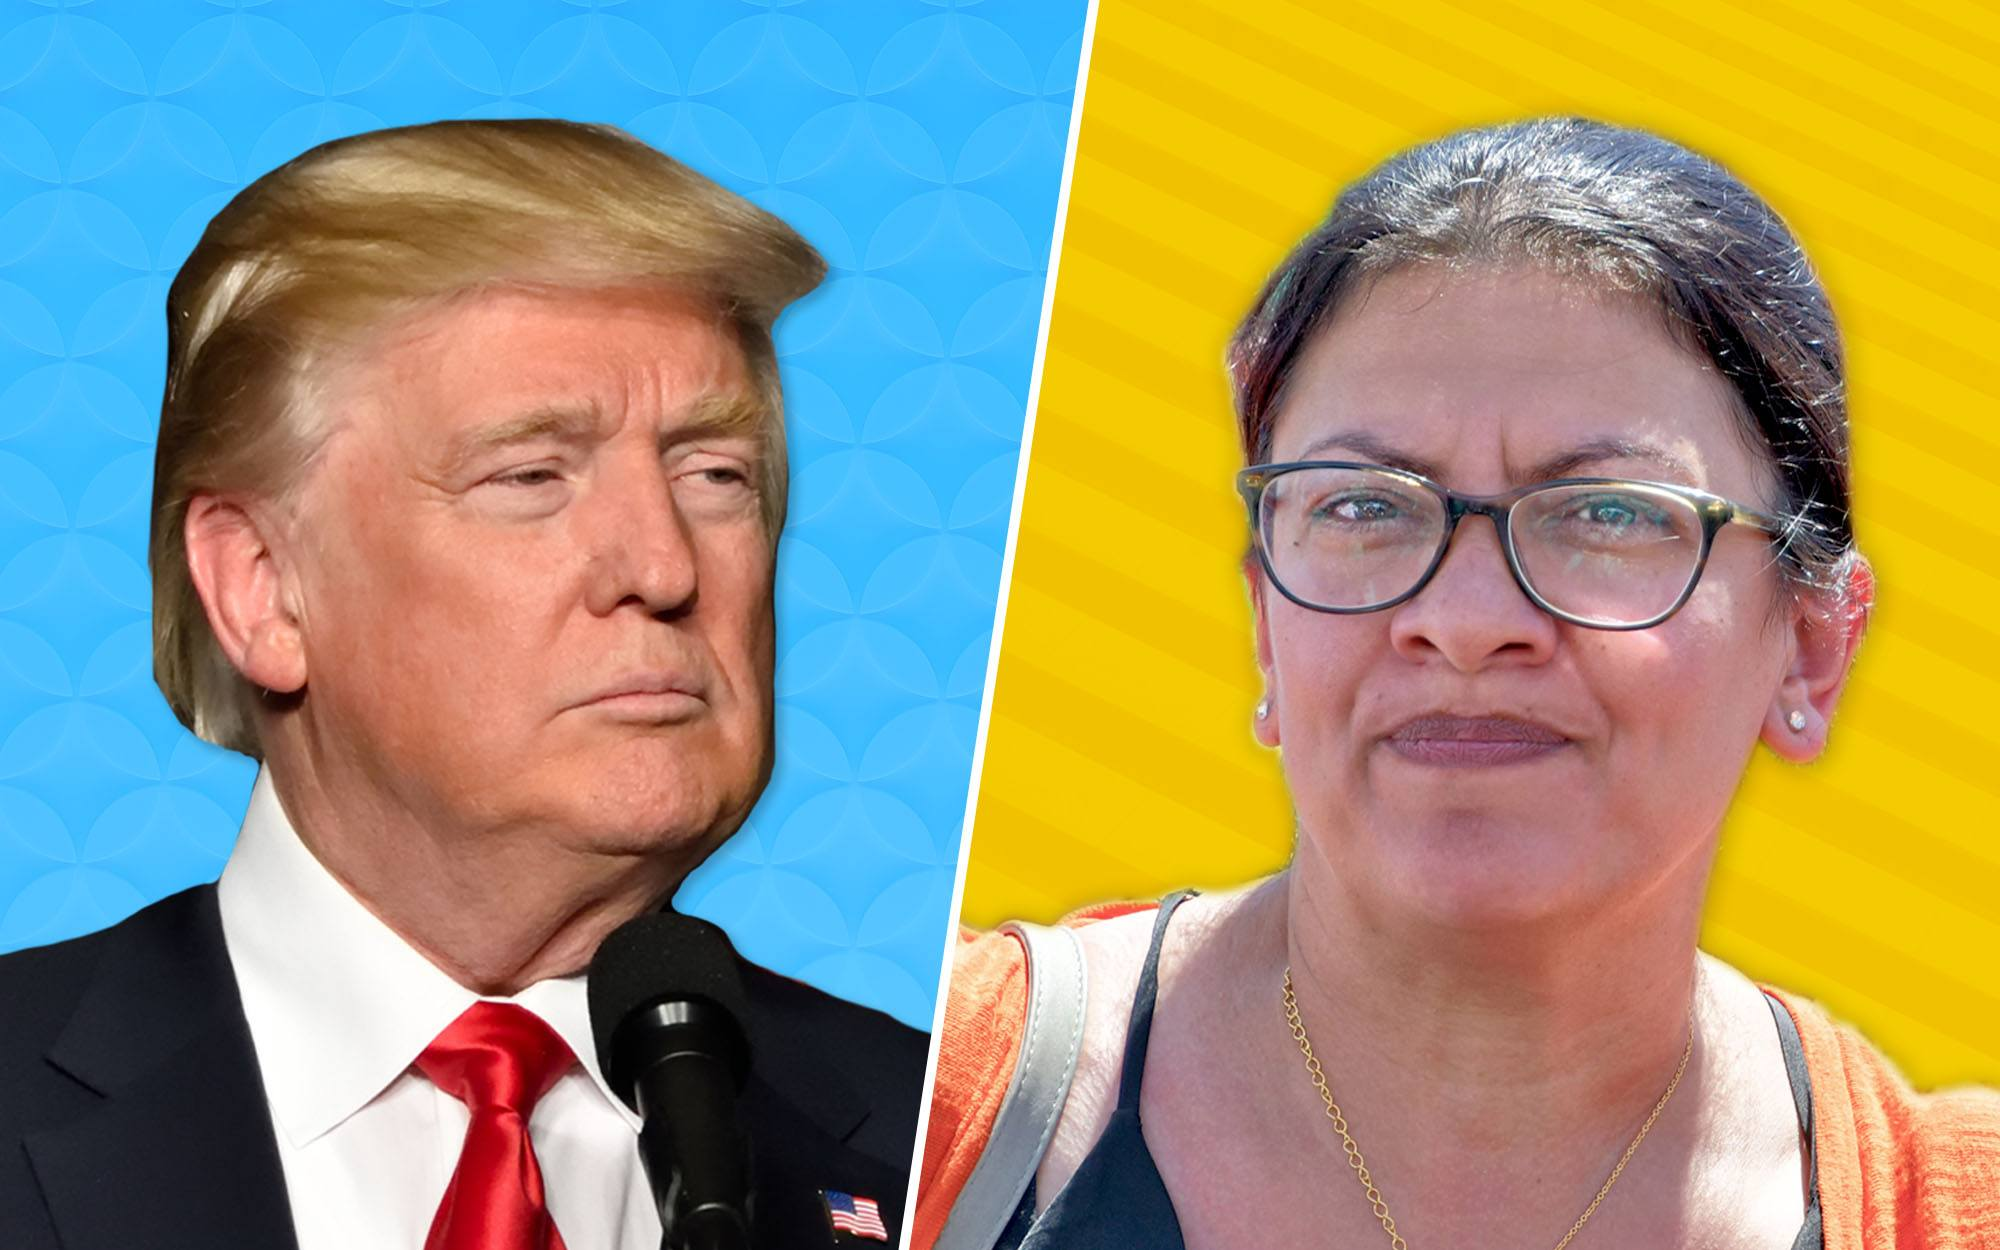 Tlaib's Grandmother Responds to Trump with These Words: 'May God Ruin Him'